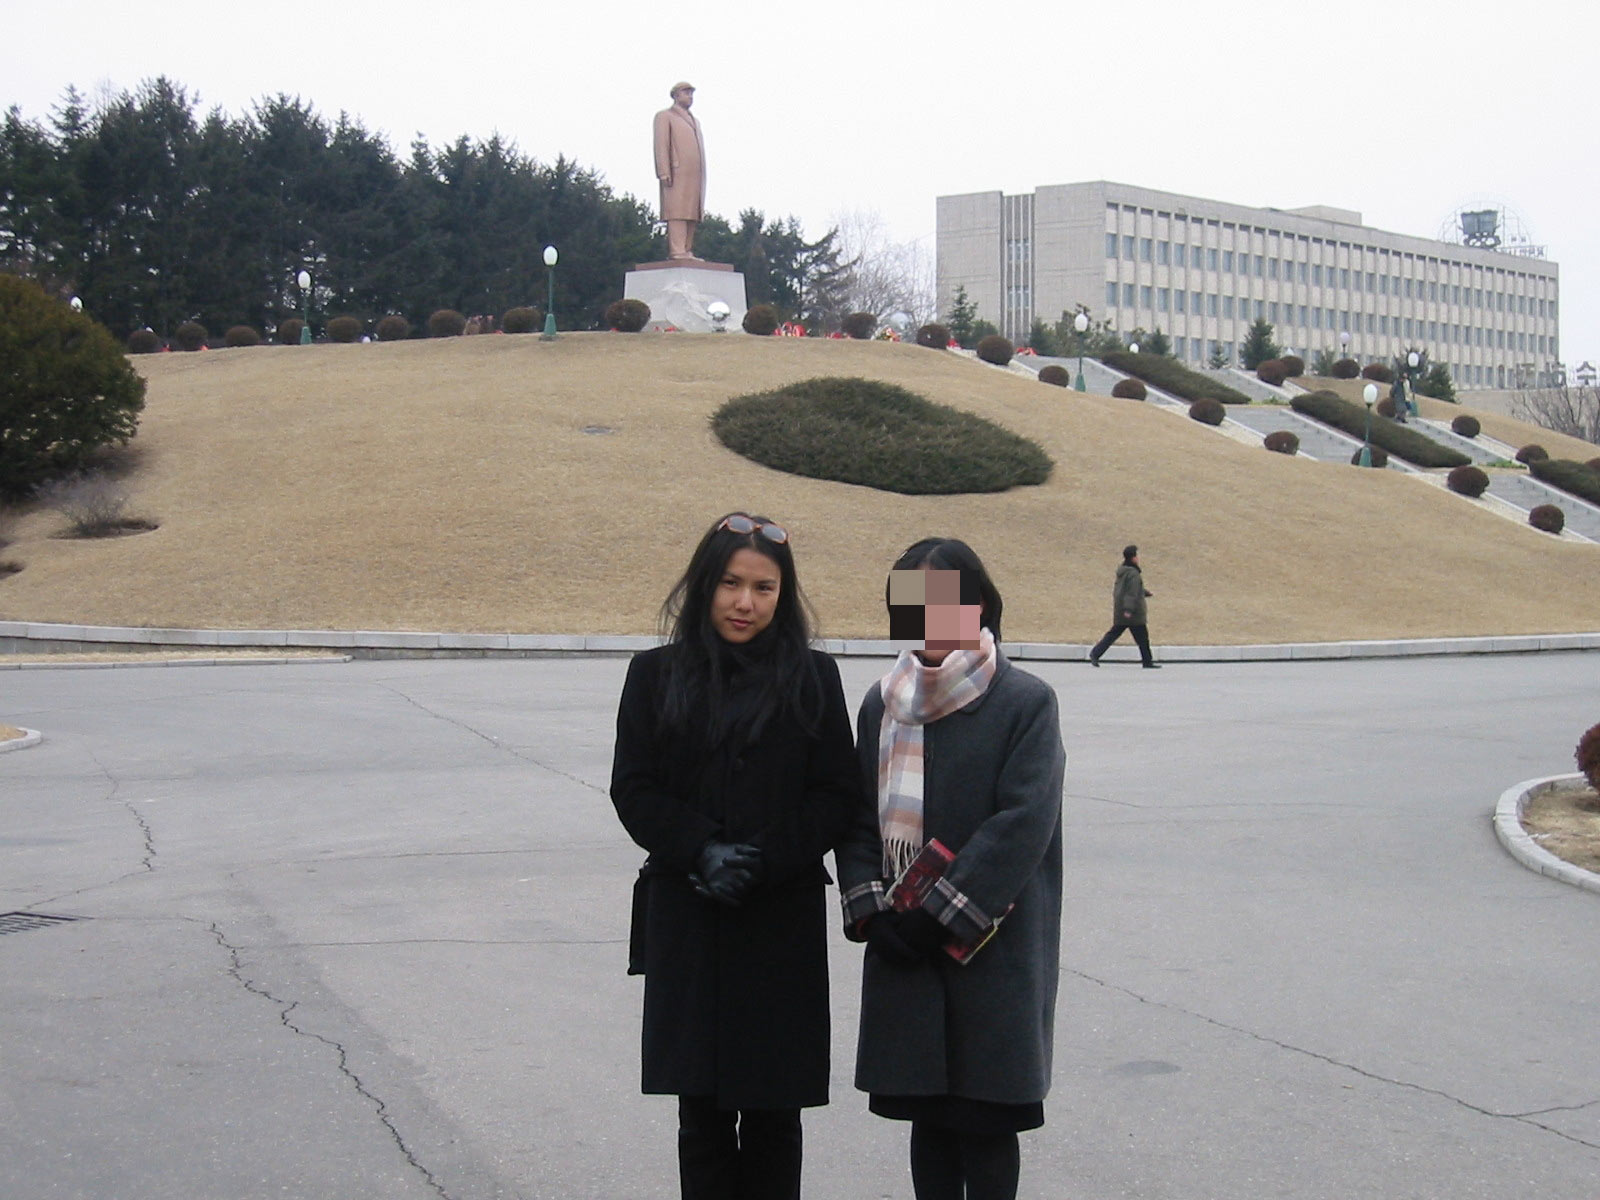 This photograph was taken with a North Korean student at Kim Il-sung University campus. Note the statue of Kim Il-sung, who ruled North Korea from 1948 until his death in 1994.